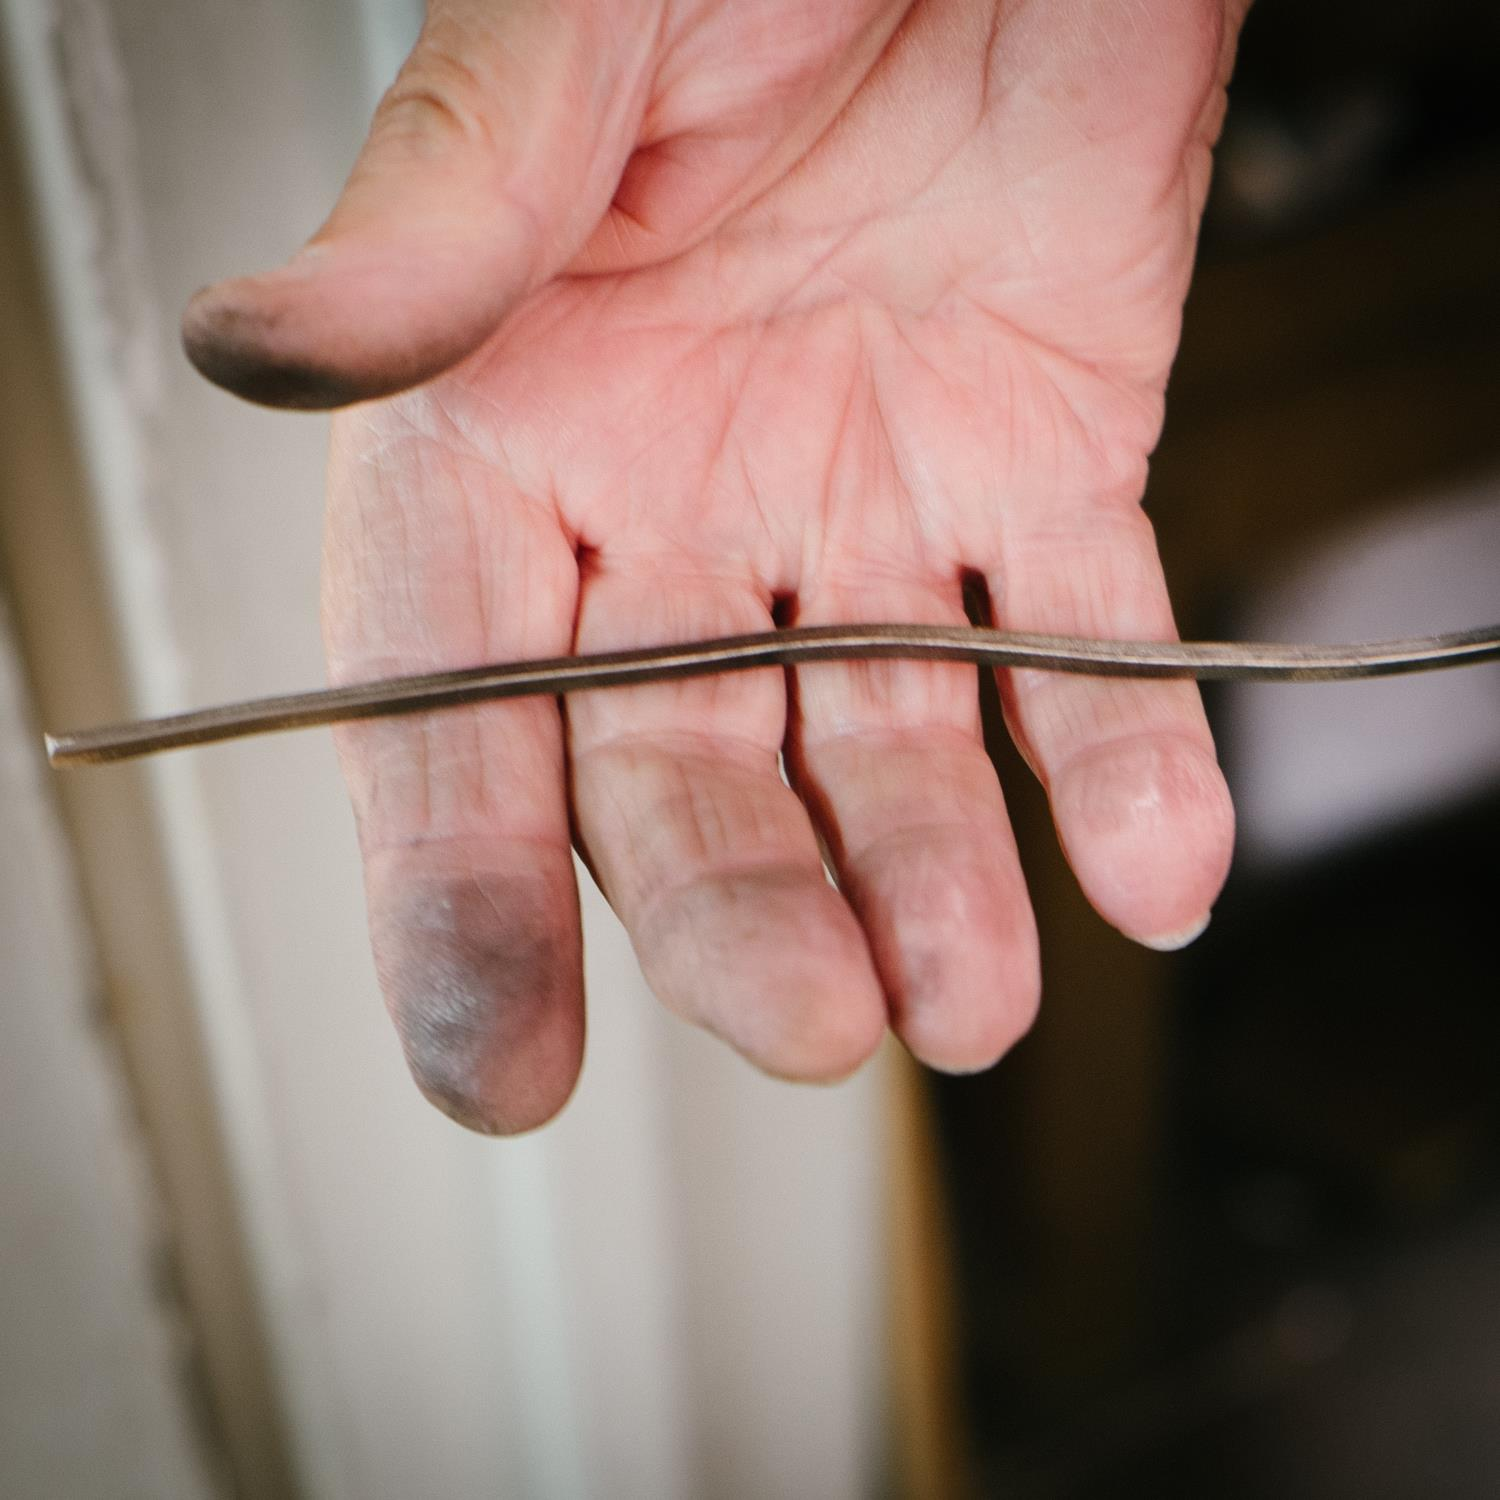 The hammered wire is passed through the roller again, and begins to take on a shinier appearance.